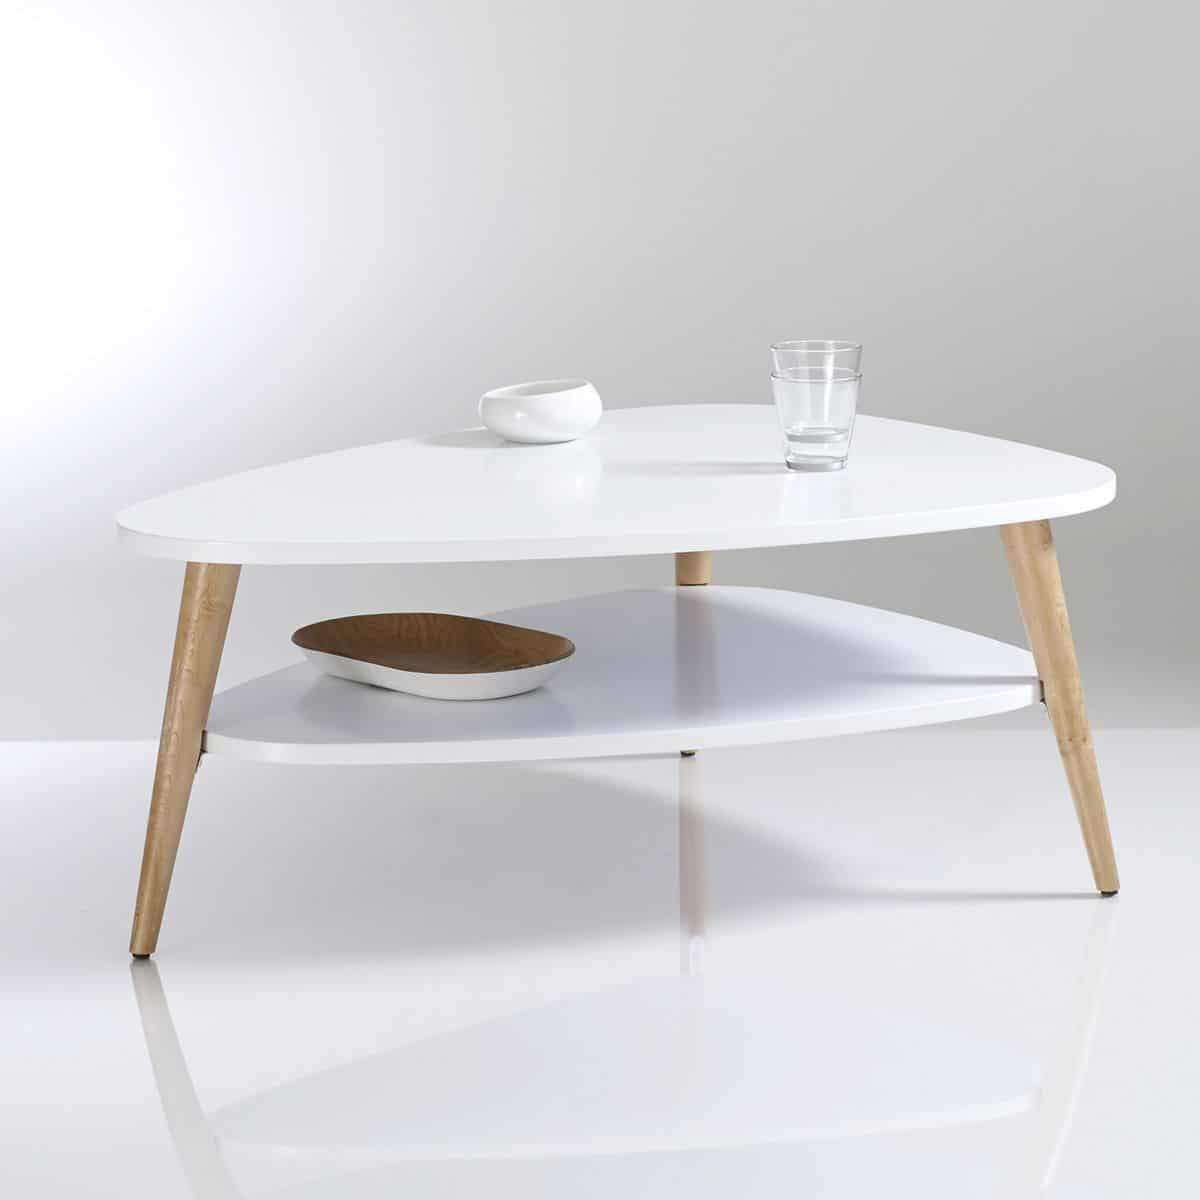 Table basse style scandinave blanche